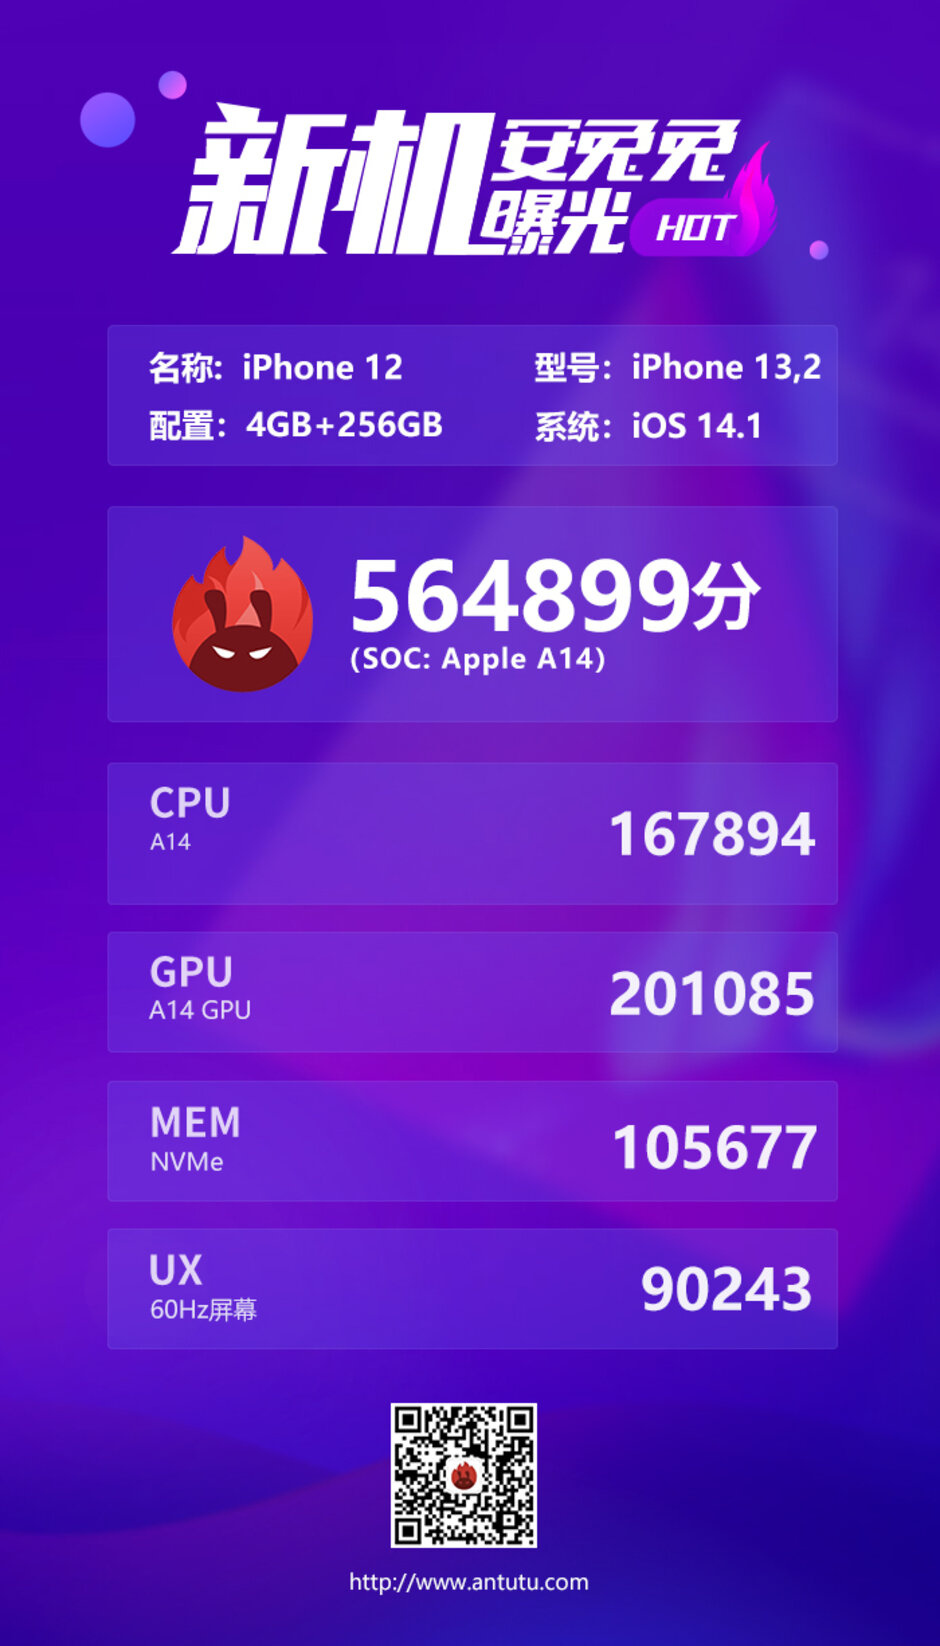 IPhone 12 & nbsp; Undu scores - iPhone 12 loses iPod Air 4 over Anto, and lags behind iPhone 11 in graphics